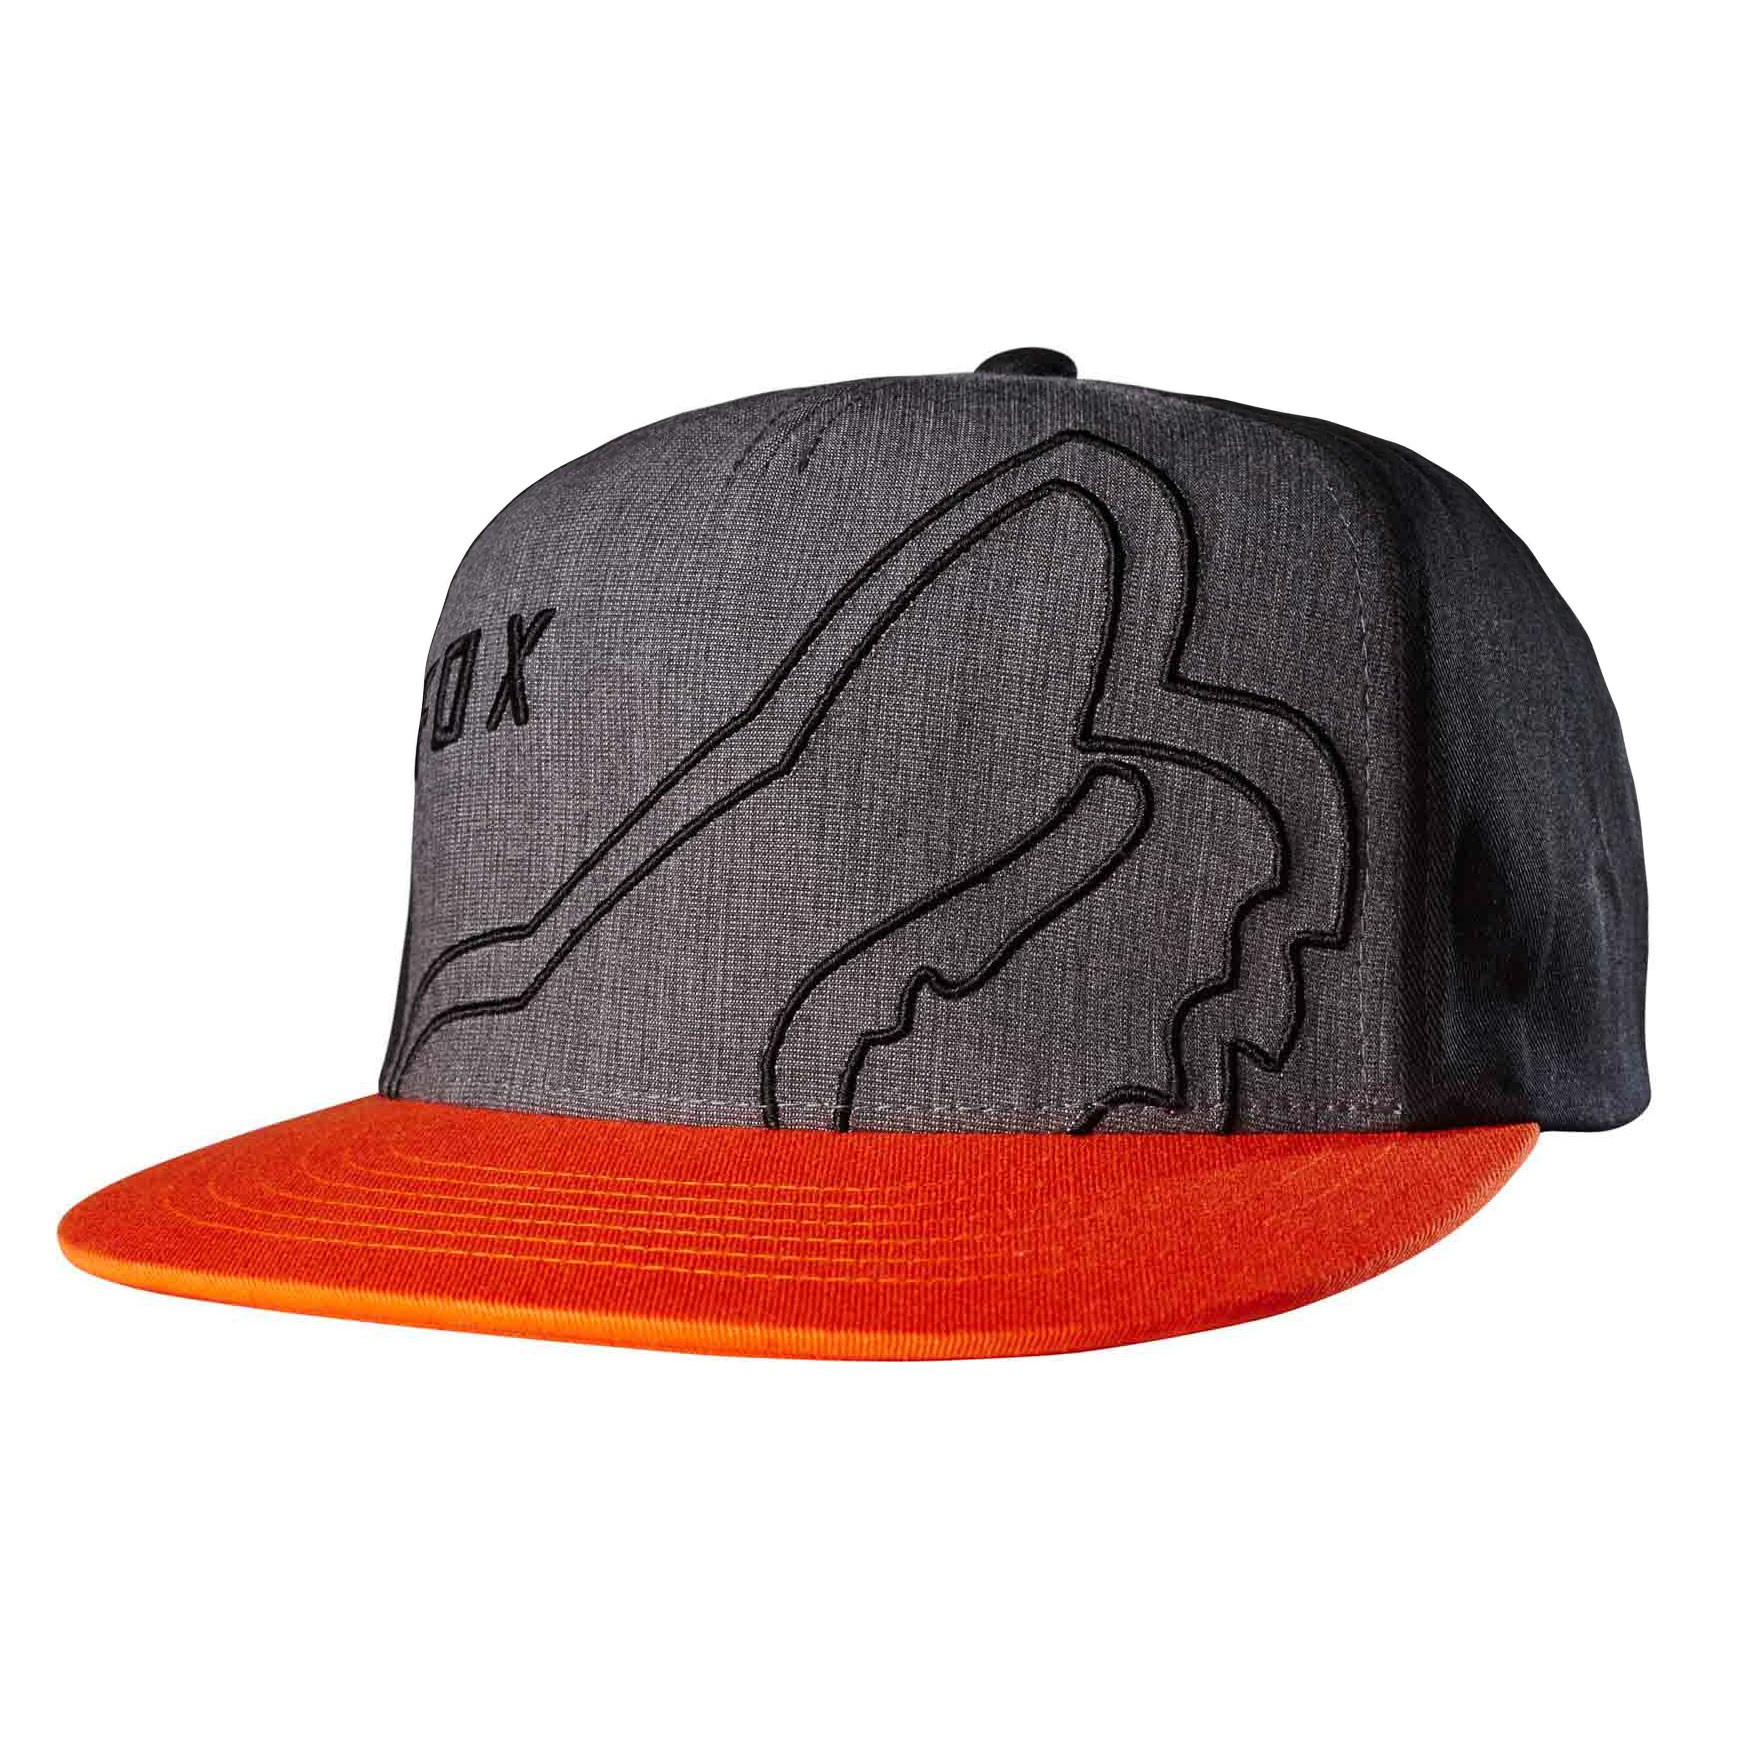 Kšiltovka Fox Ambush Snapback black